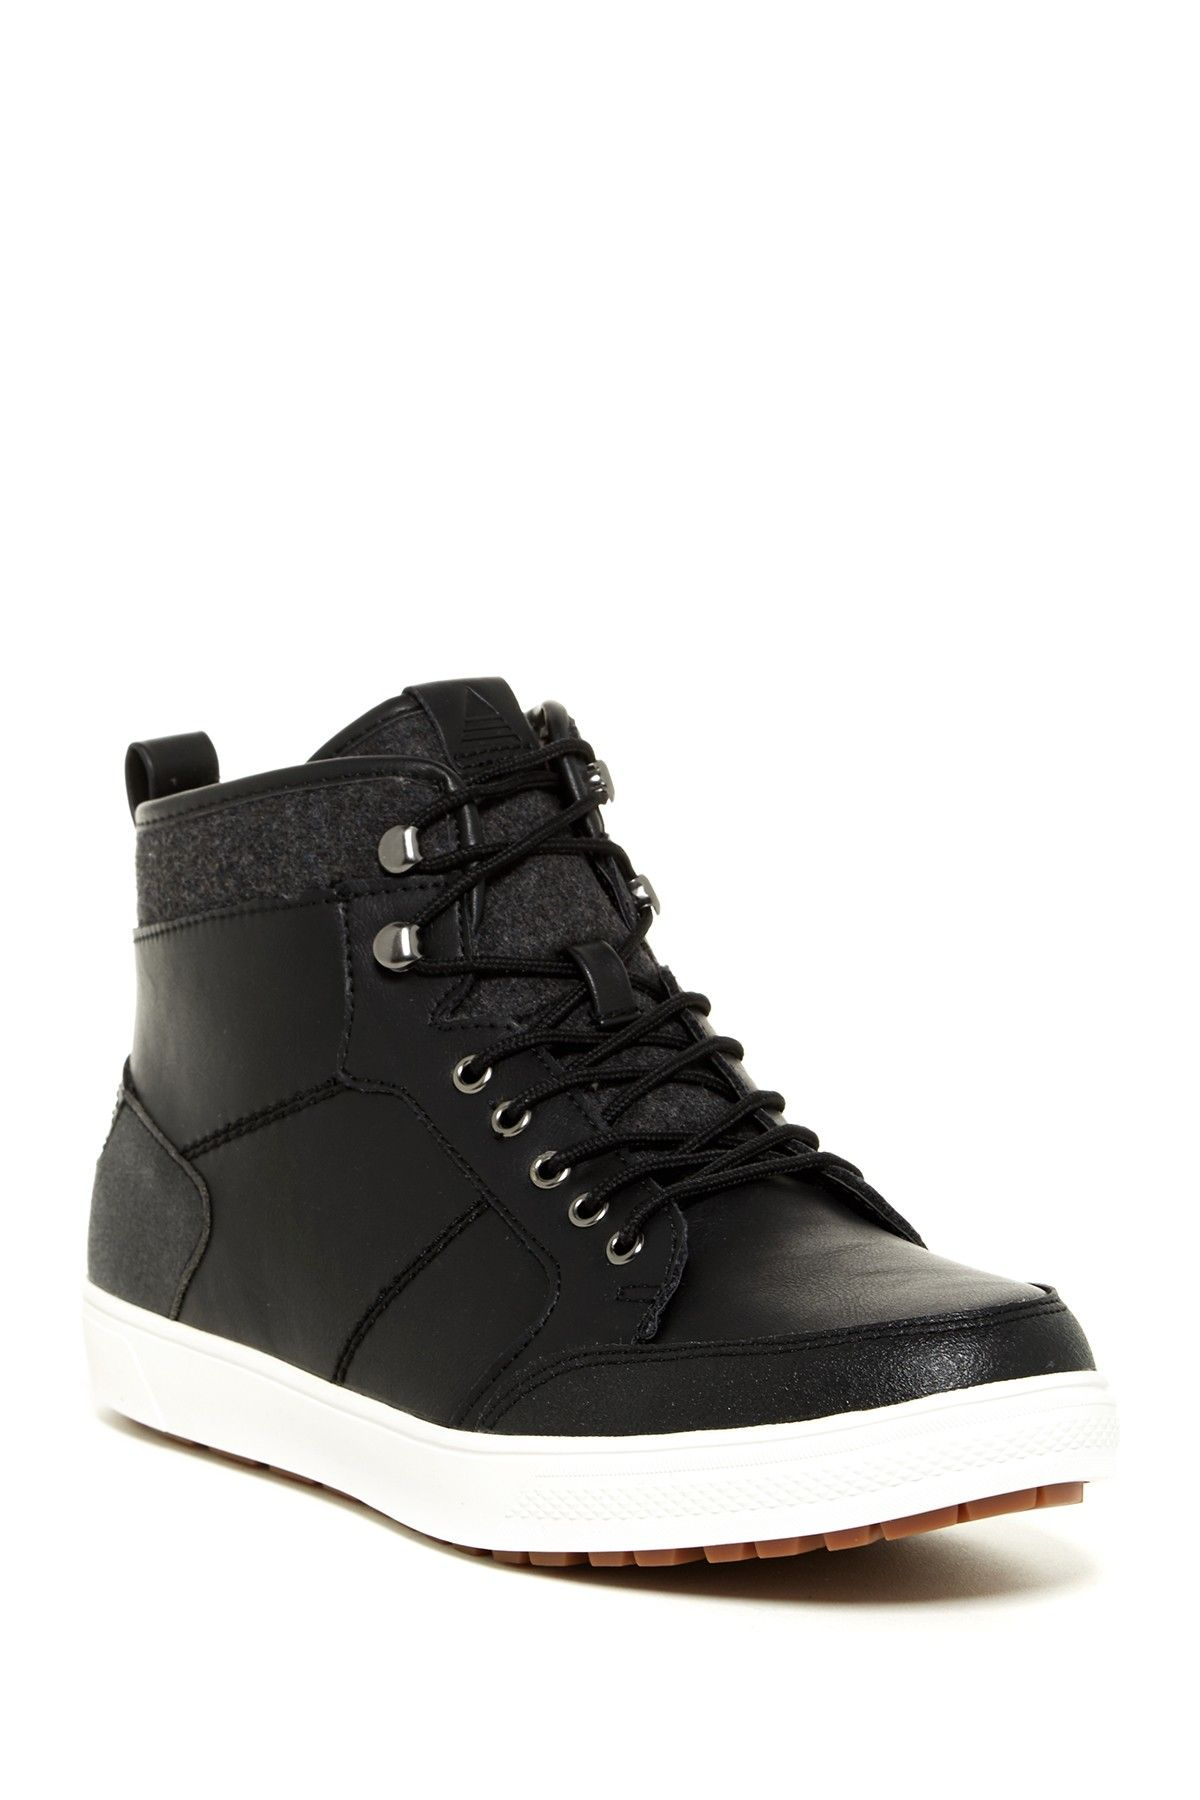 9b0b5e29d8 60 Aldo - Heliot Faux Fur Lined Hi Top Sneaker at Nordstrom Rack. Free  Shipping on orders over  100.